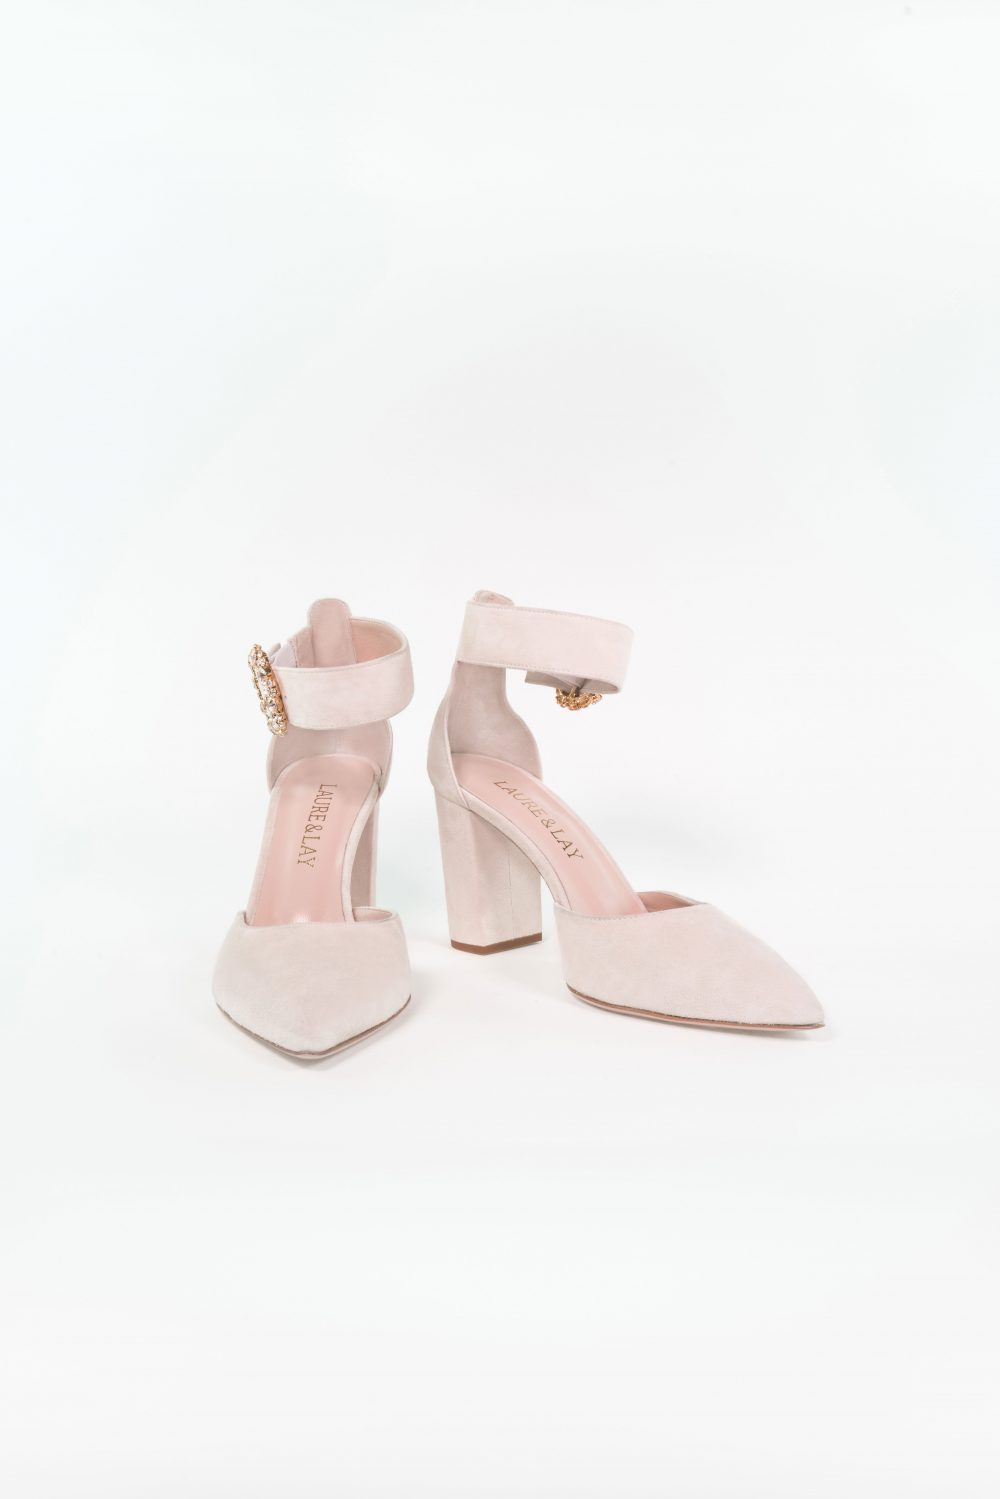 Brautschuh Noemi Light Rose mit Ankle Strap